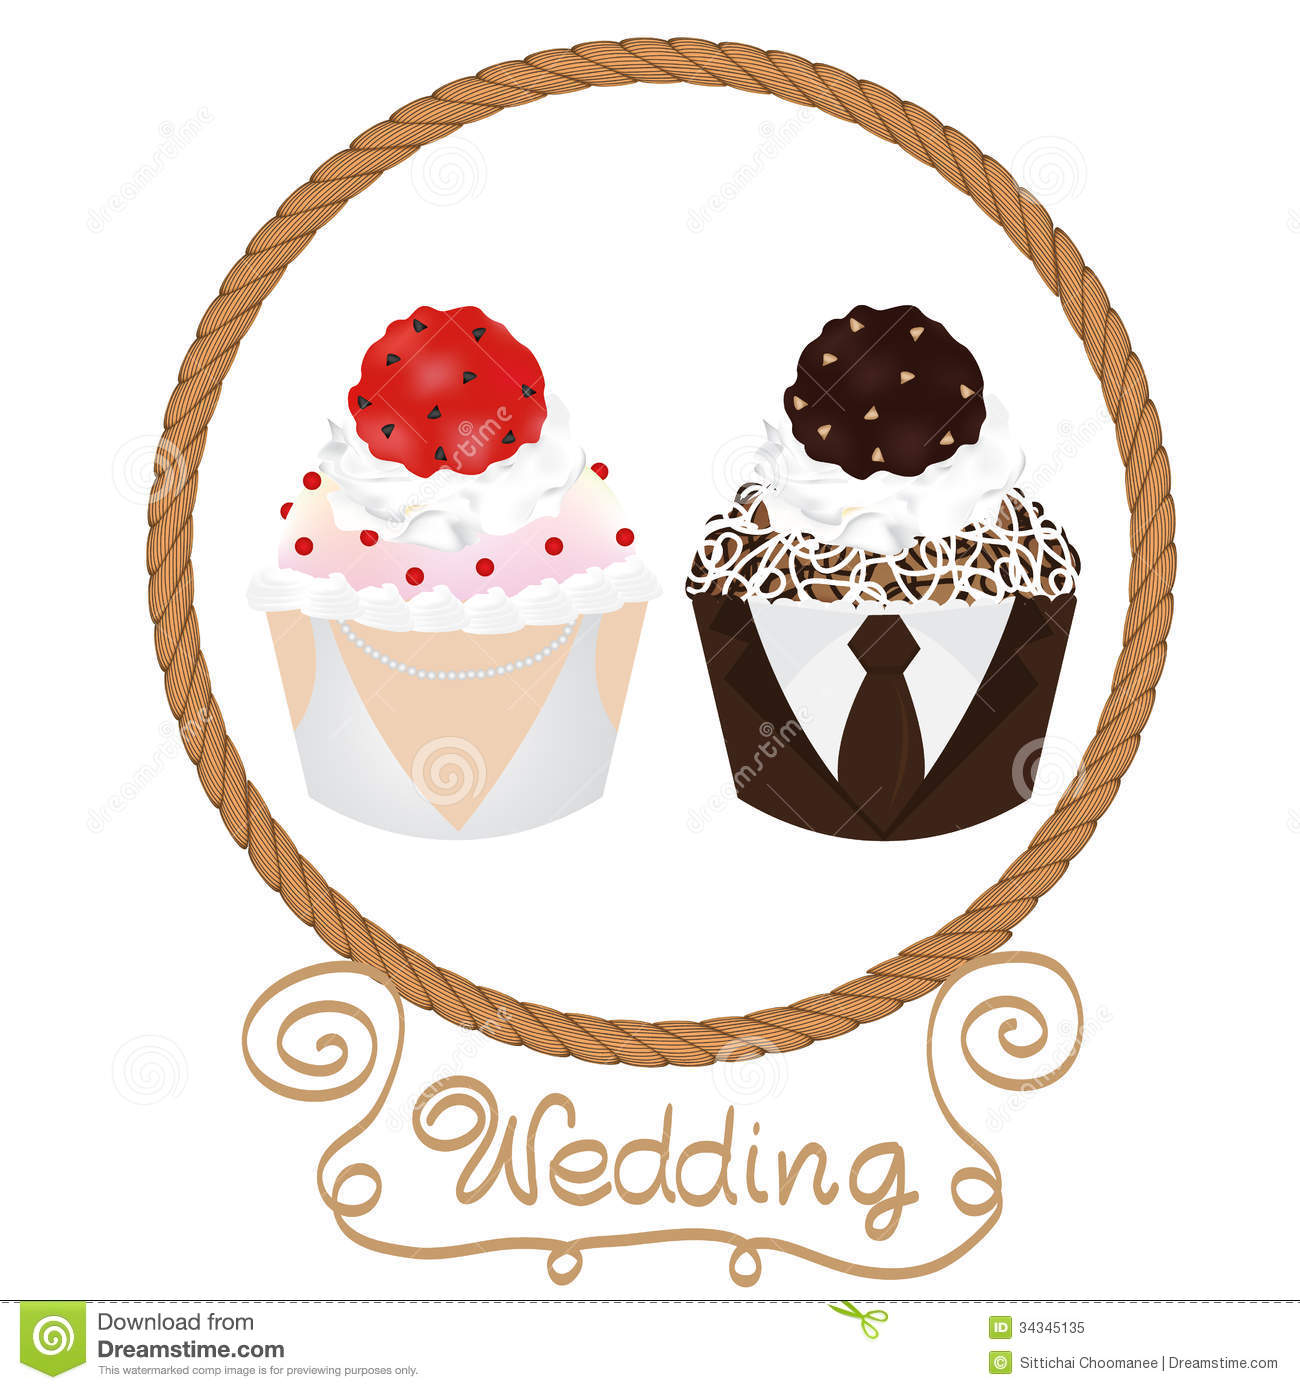 Wedding Celebration Clipart Wedding cupcakes bride and